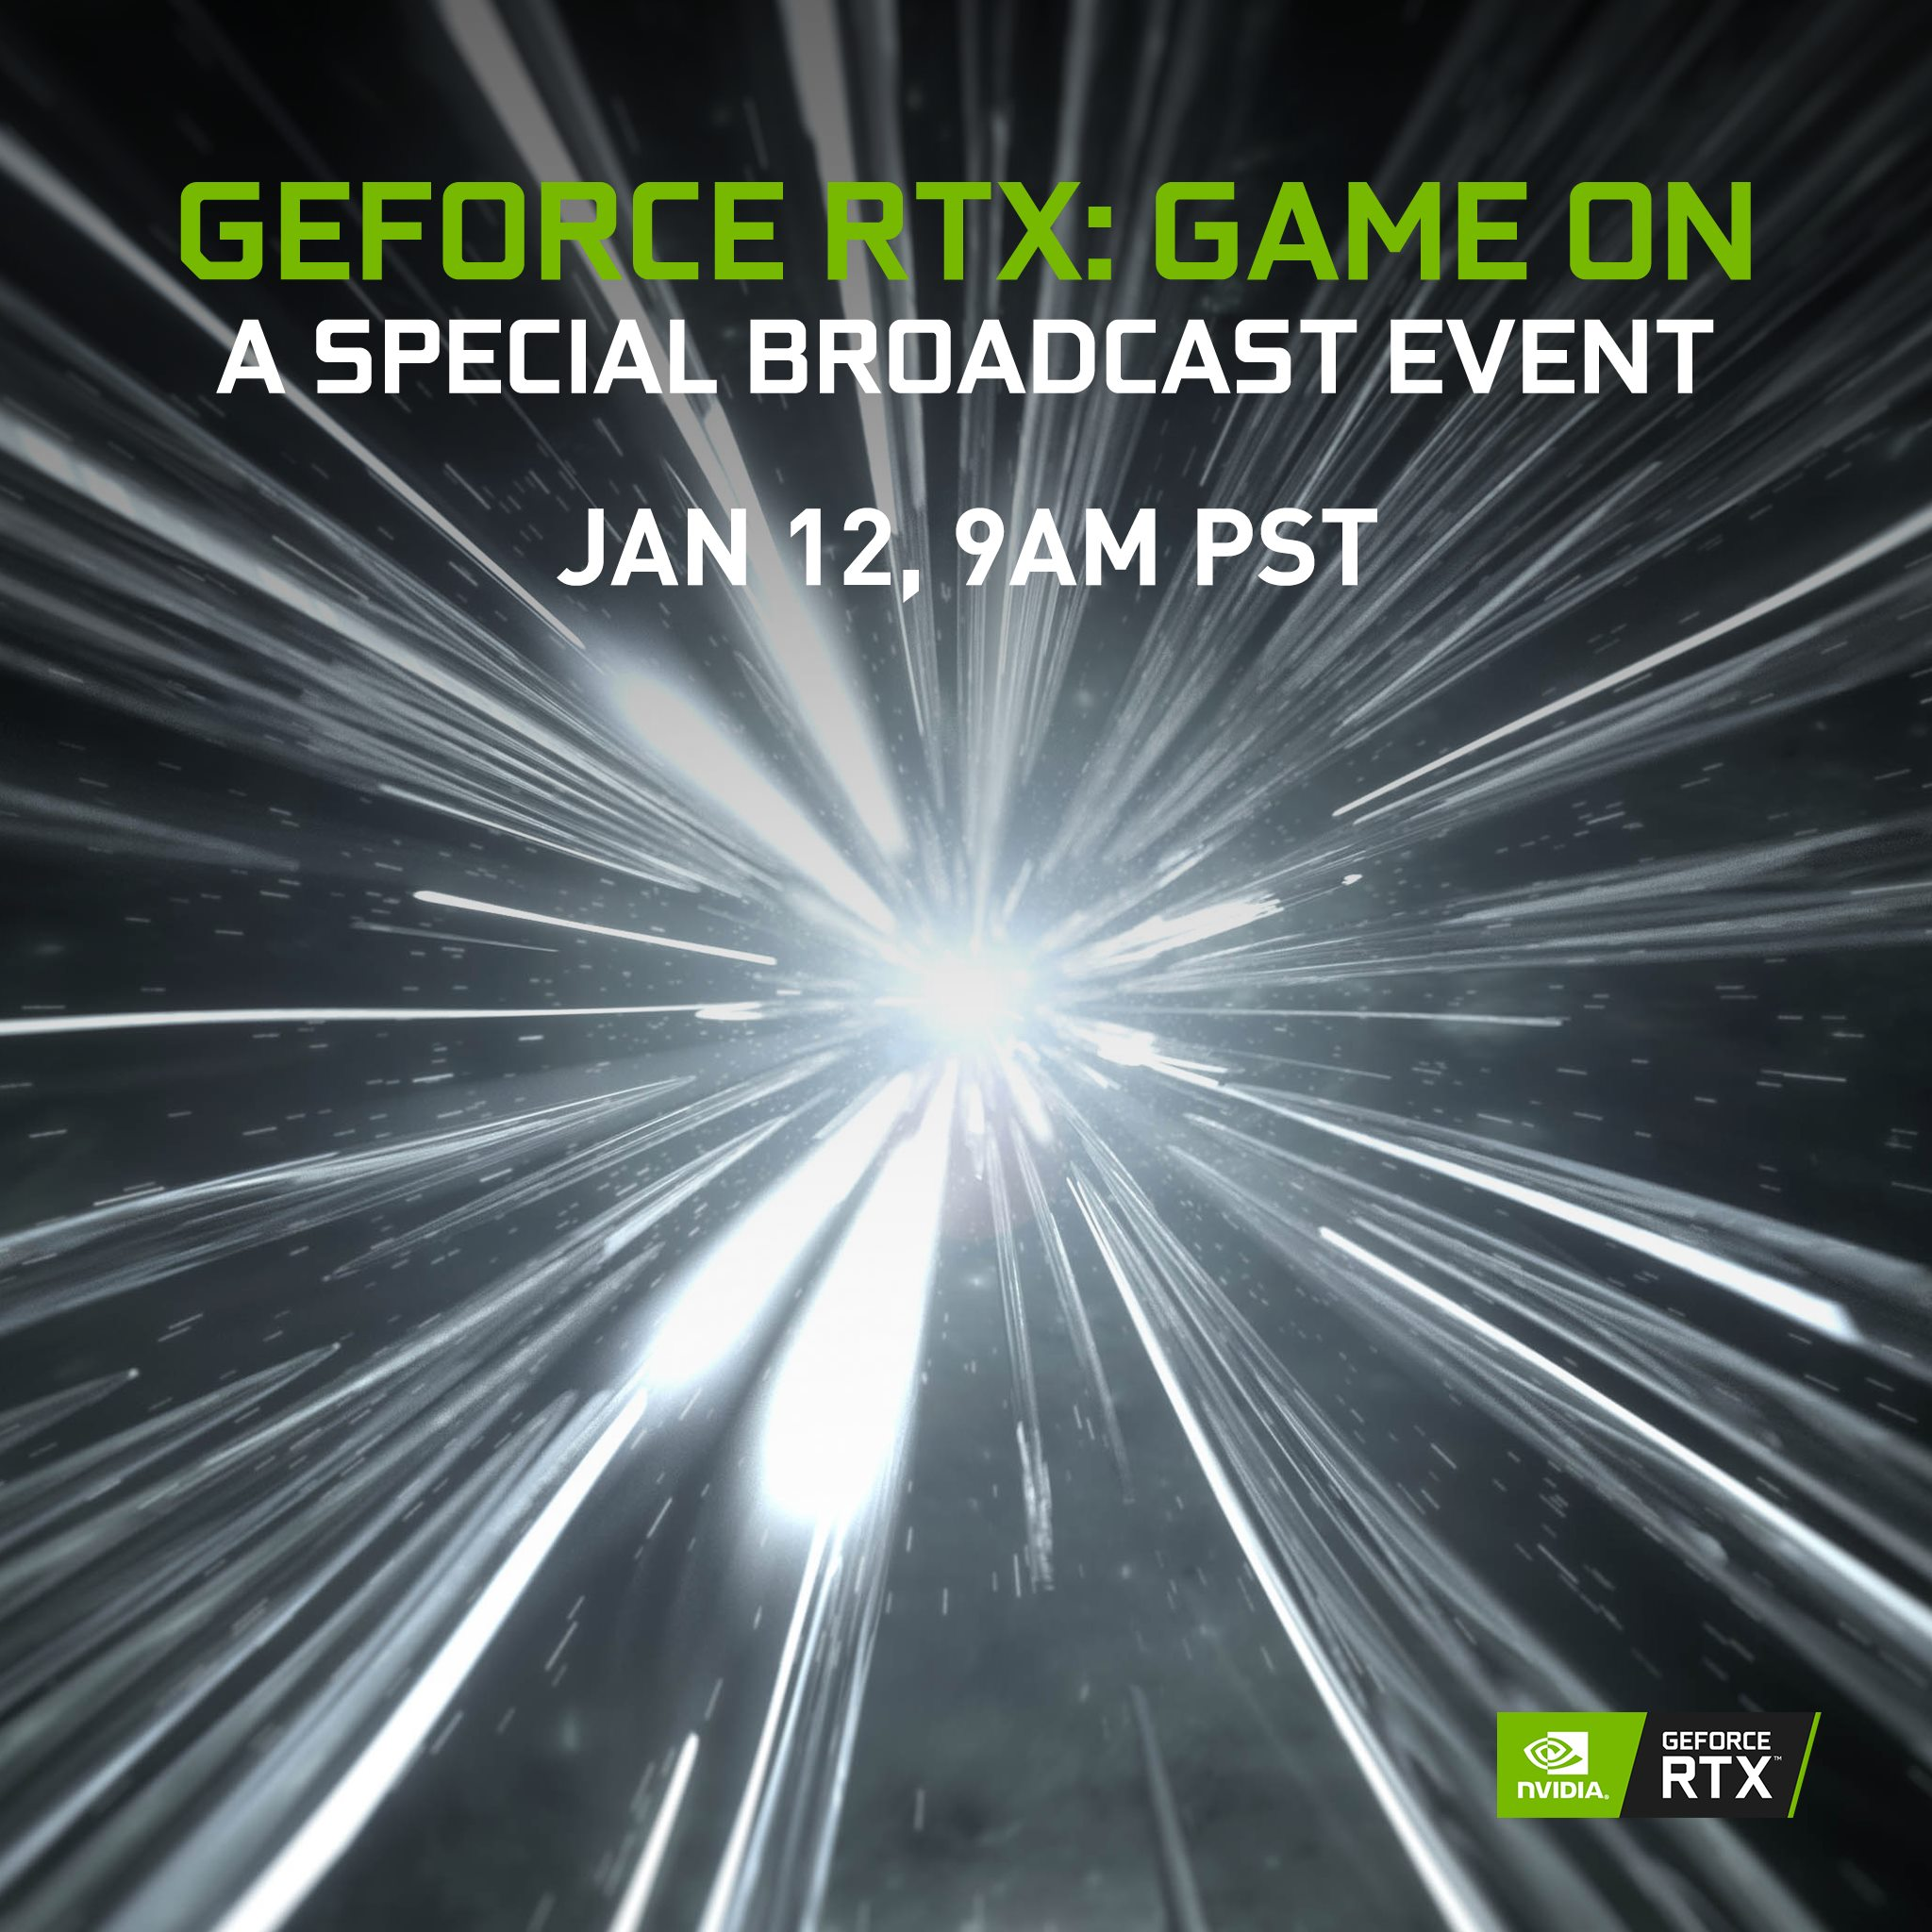 GeForce RTX: Game On is coming next week January 12 at 9AM PST!